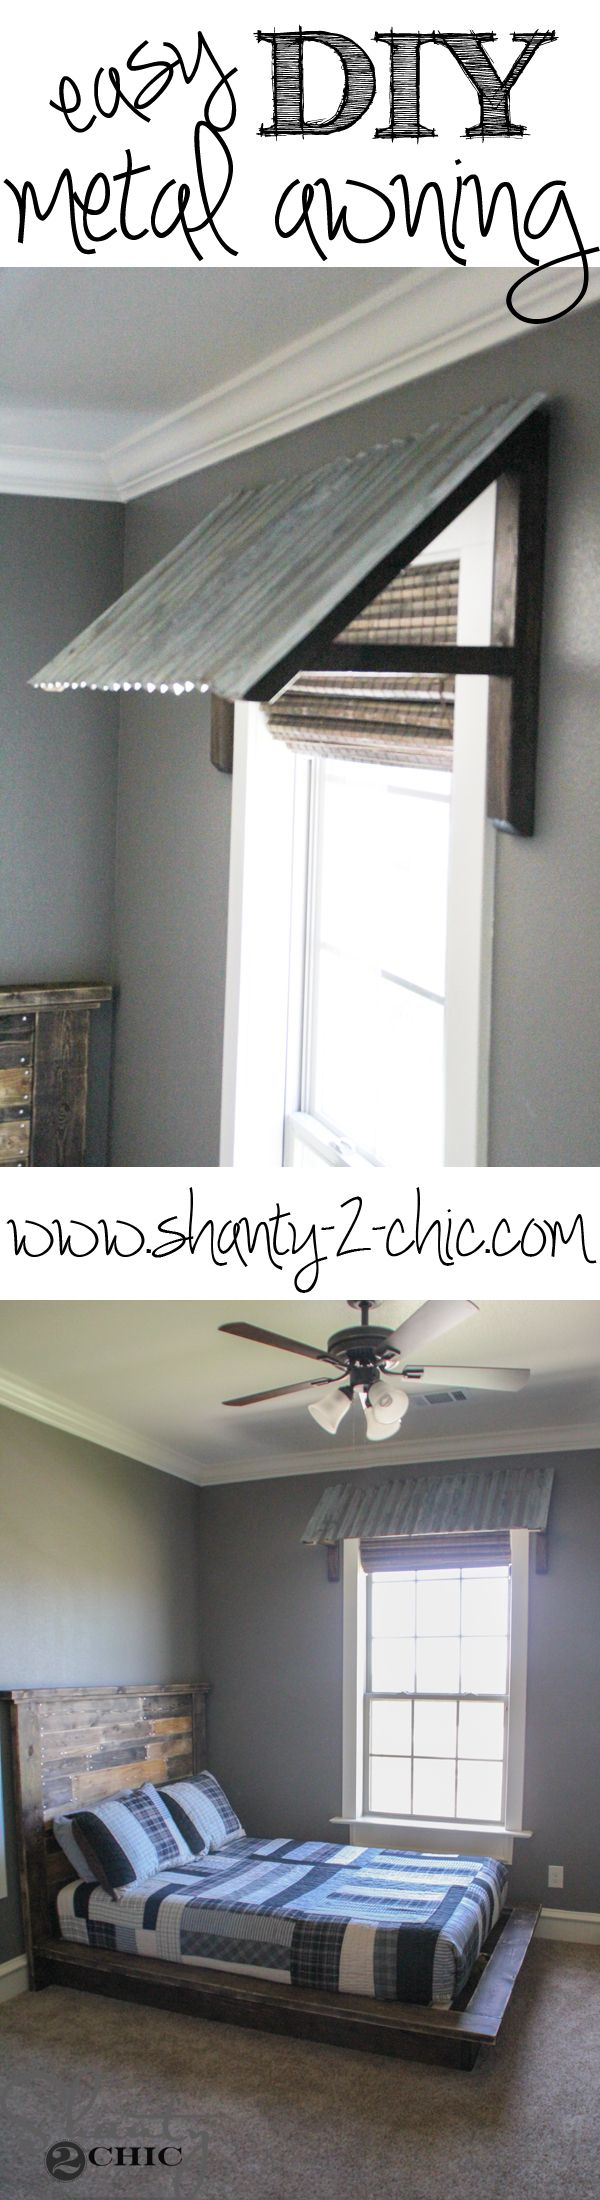 Easy and inexpensive corrugated metal awning! Plus a tutorial on how to make new metal look old!